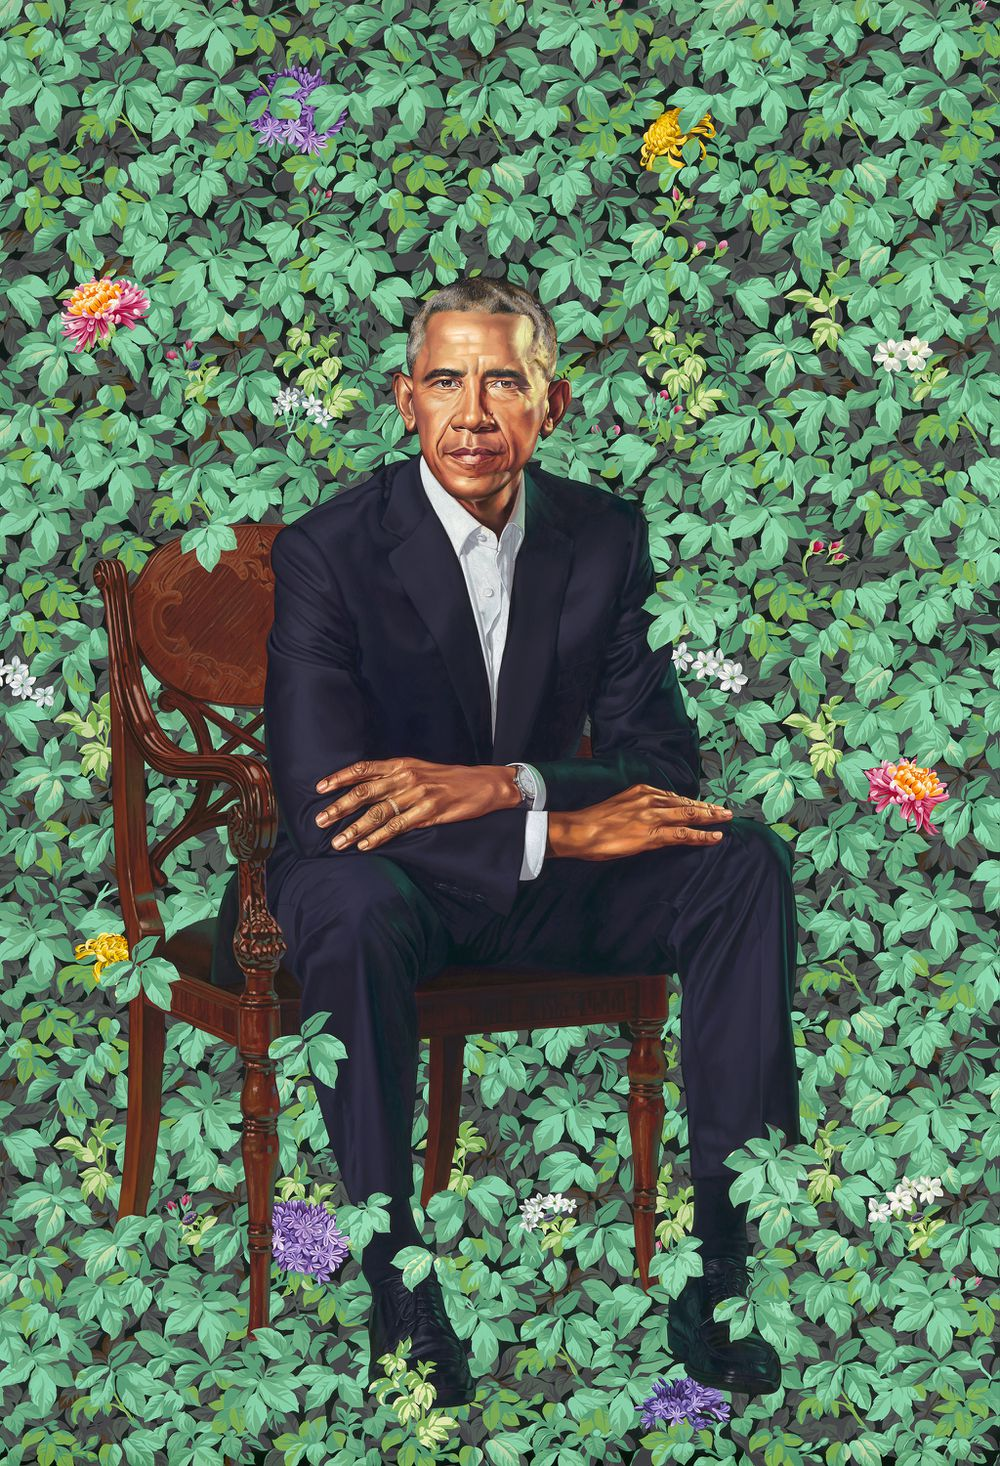 Official presidential portrait of Barack Obama